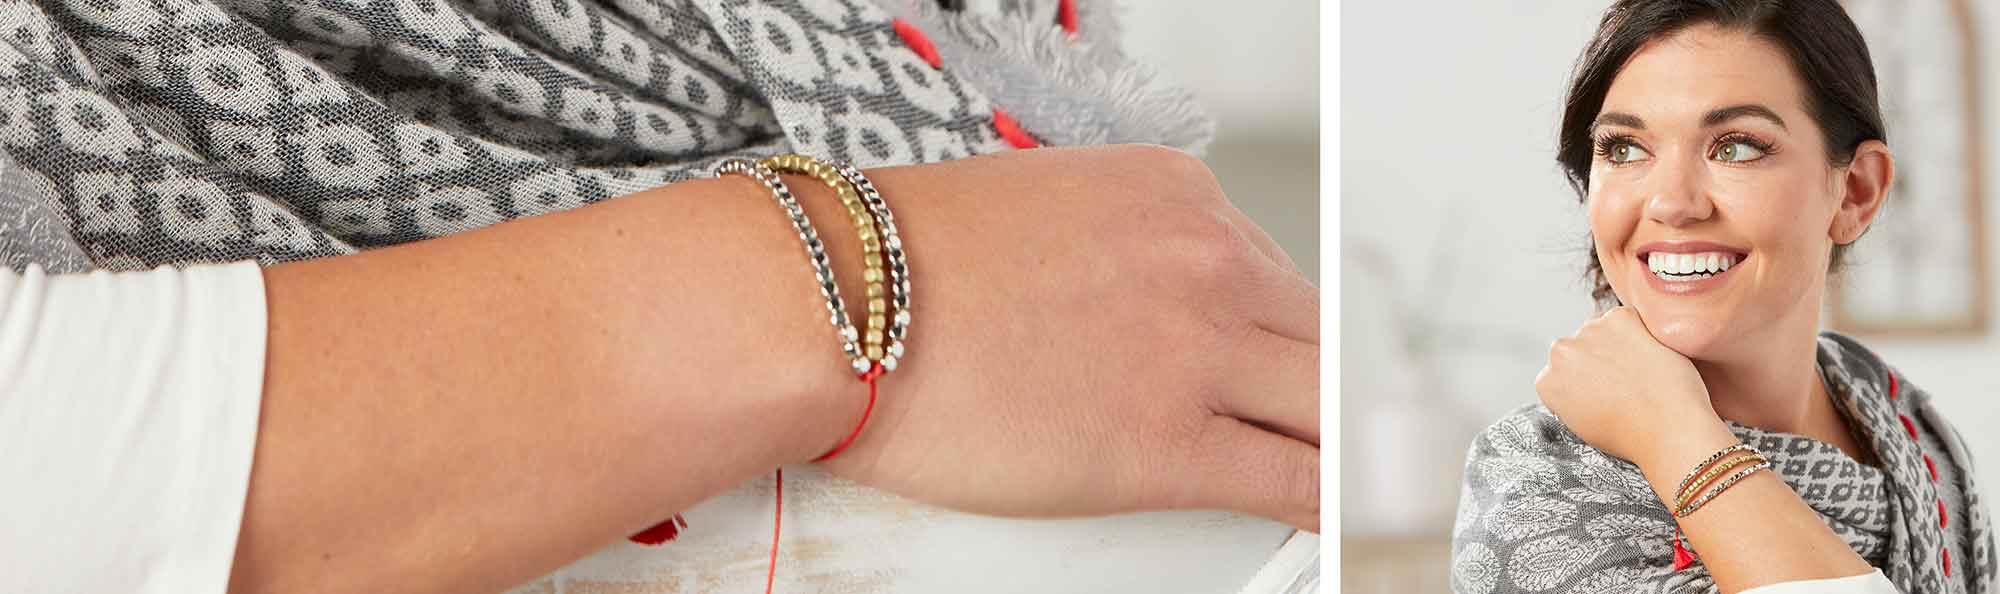 a red thread bracelet and a woman smiling with her arm on her neck and bracelet on her wrist